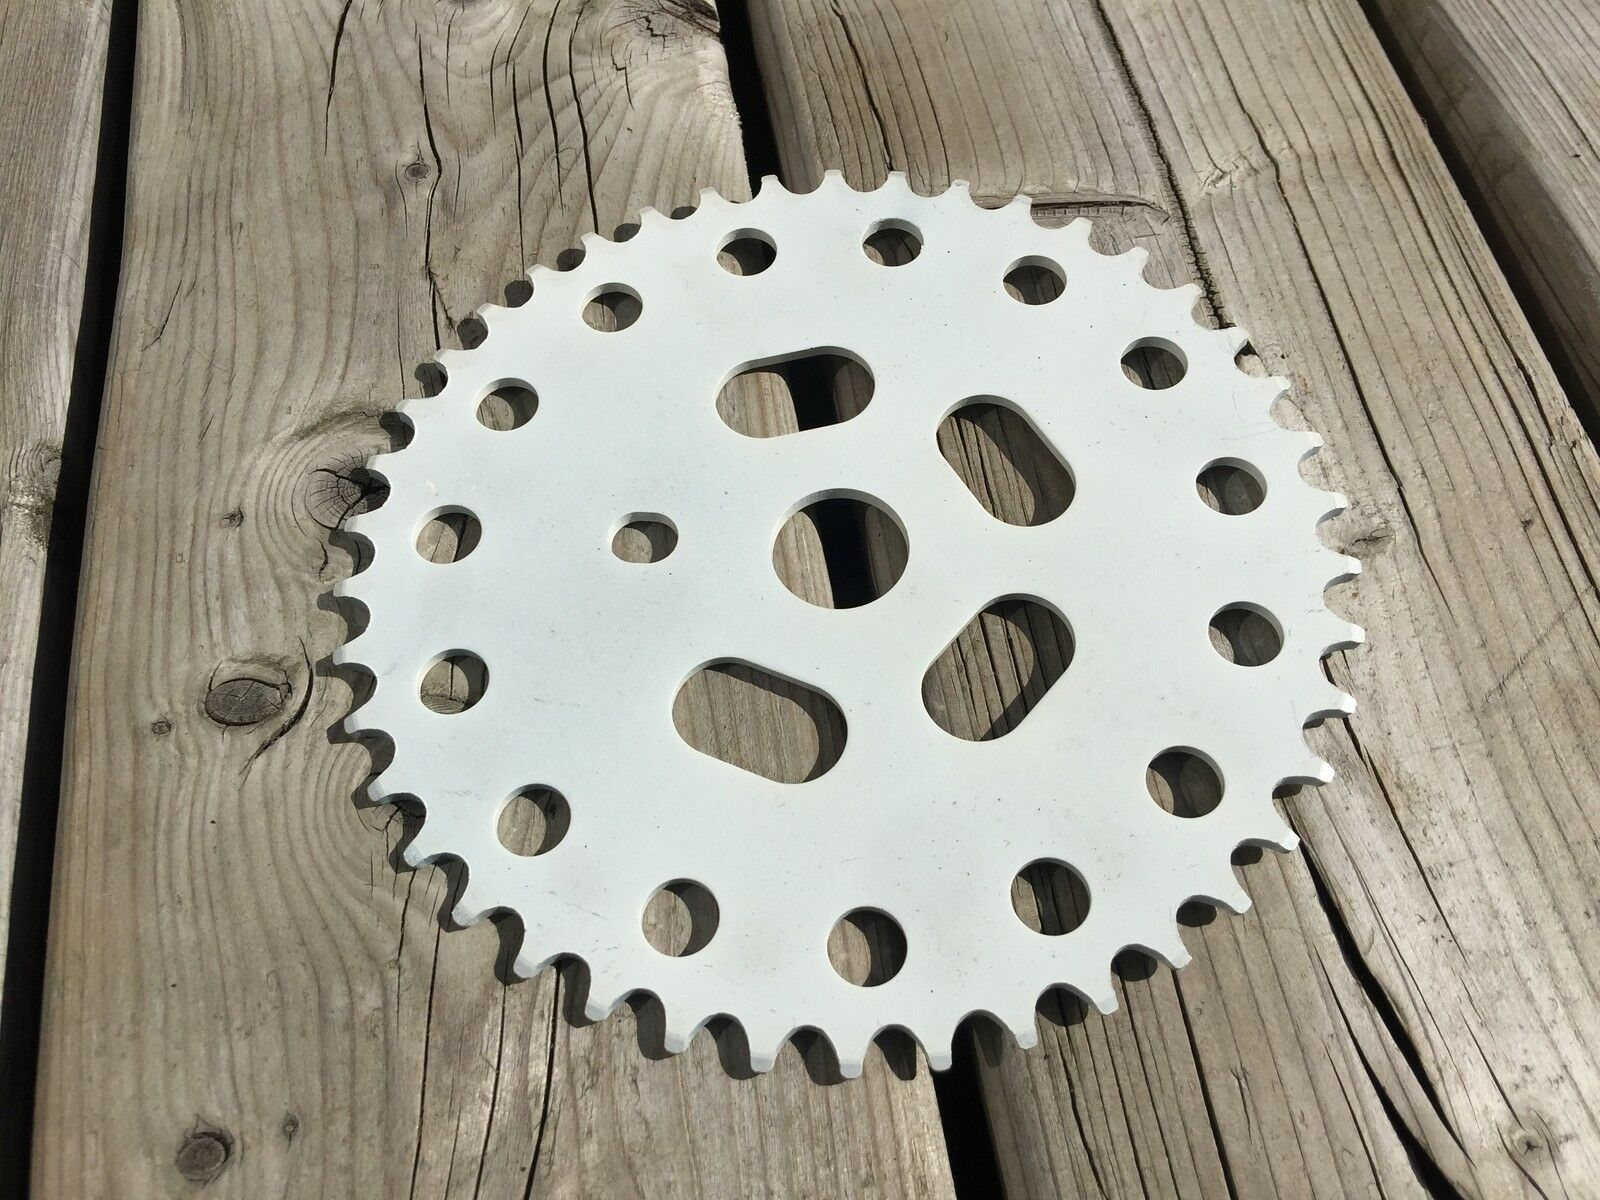 OLD SCHOOL BMX POWER DISC ALLOY CHAINRING  42T CRANKSET NOS NEW MX OLDSCHOOL BMX  low price